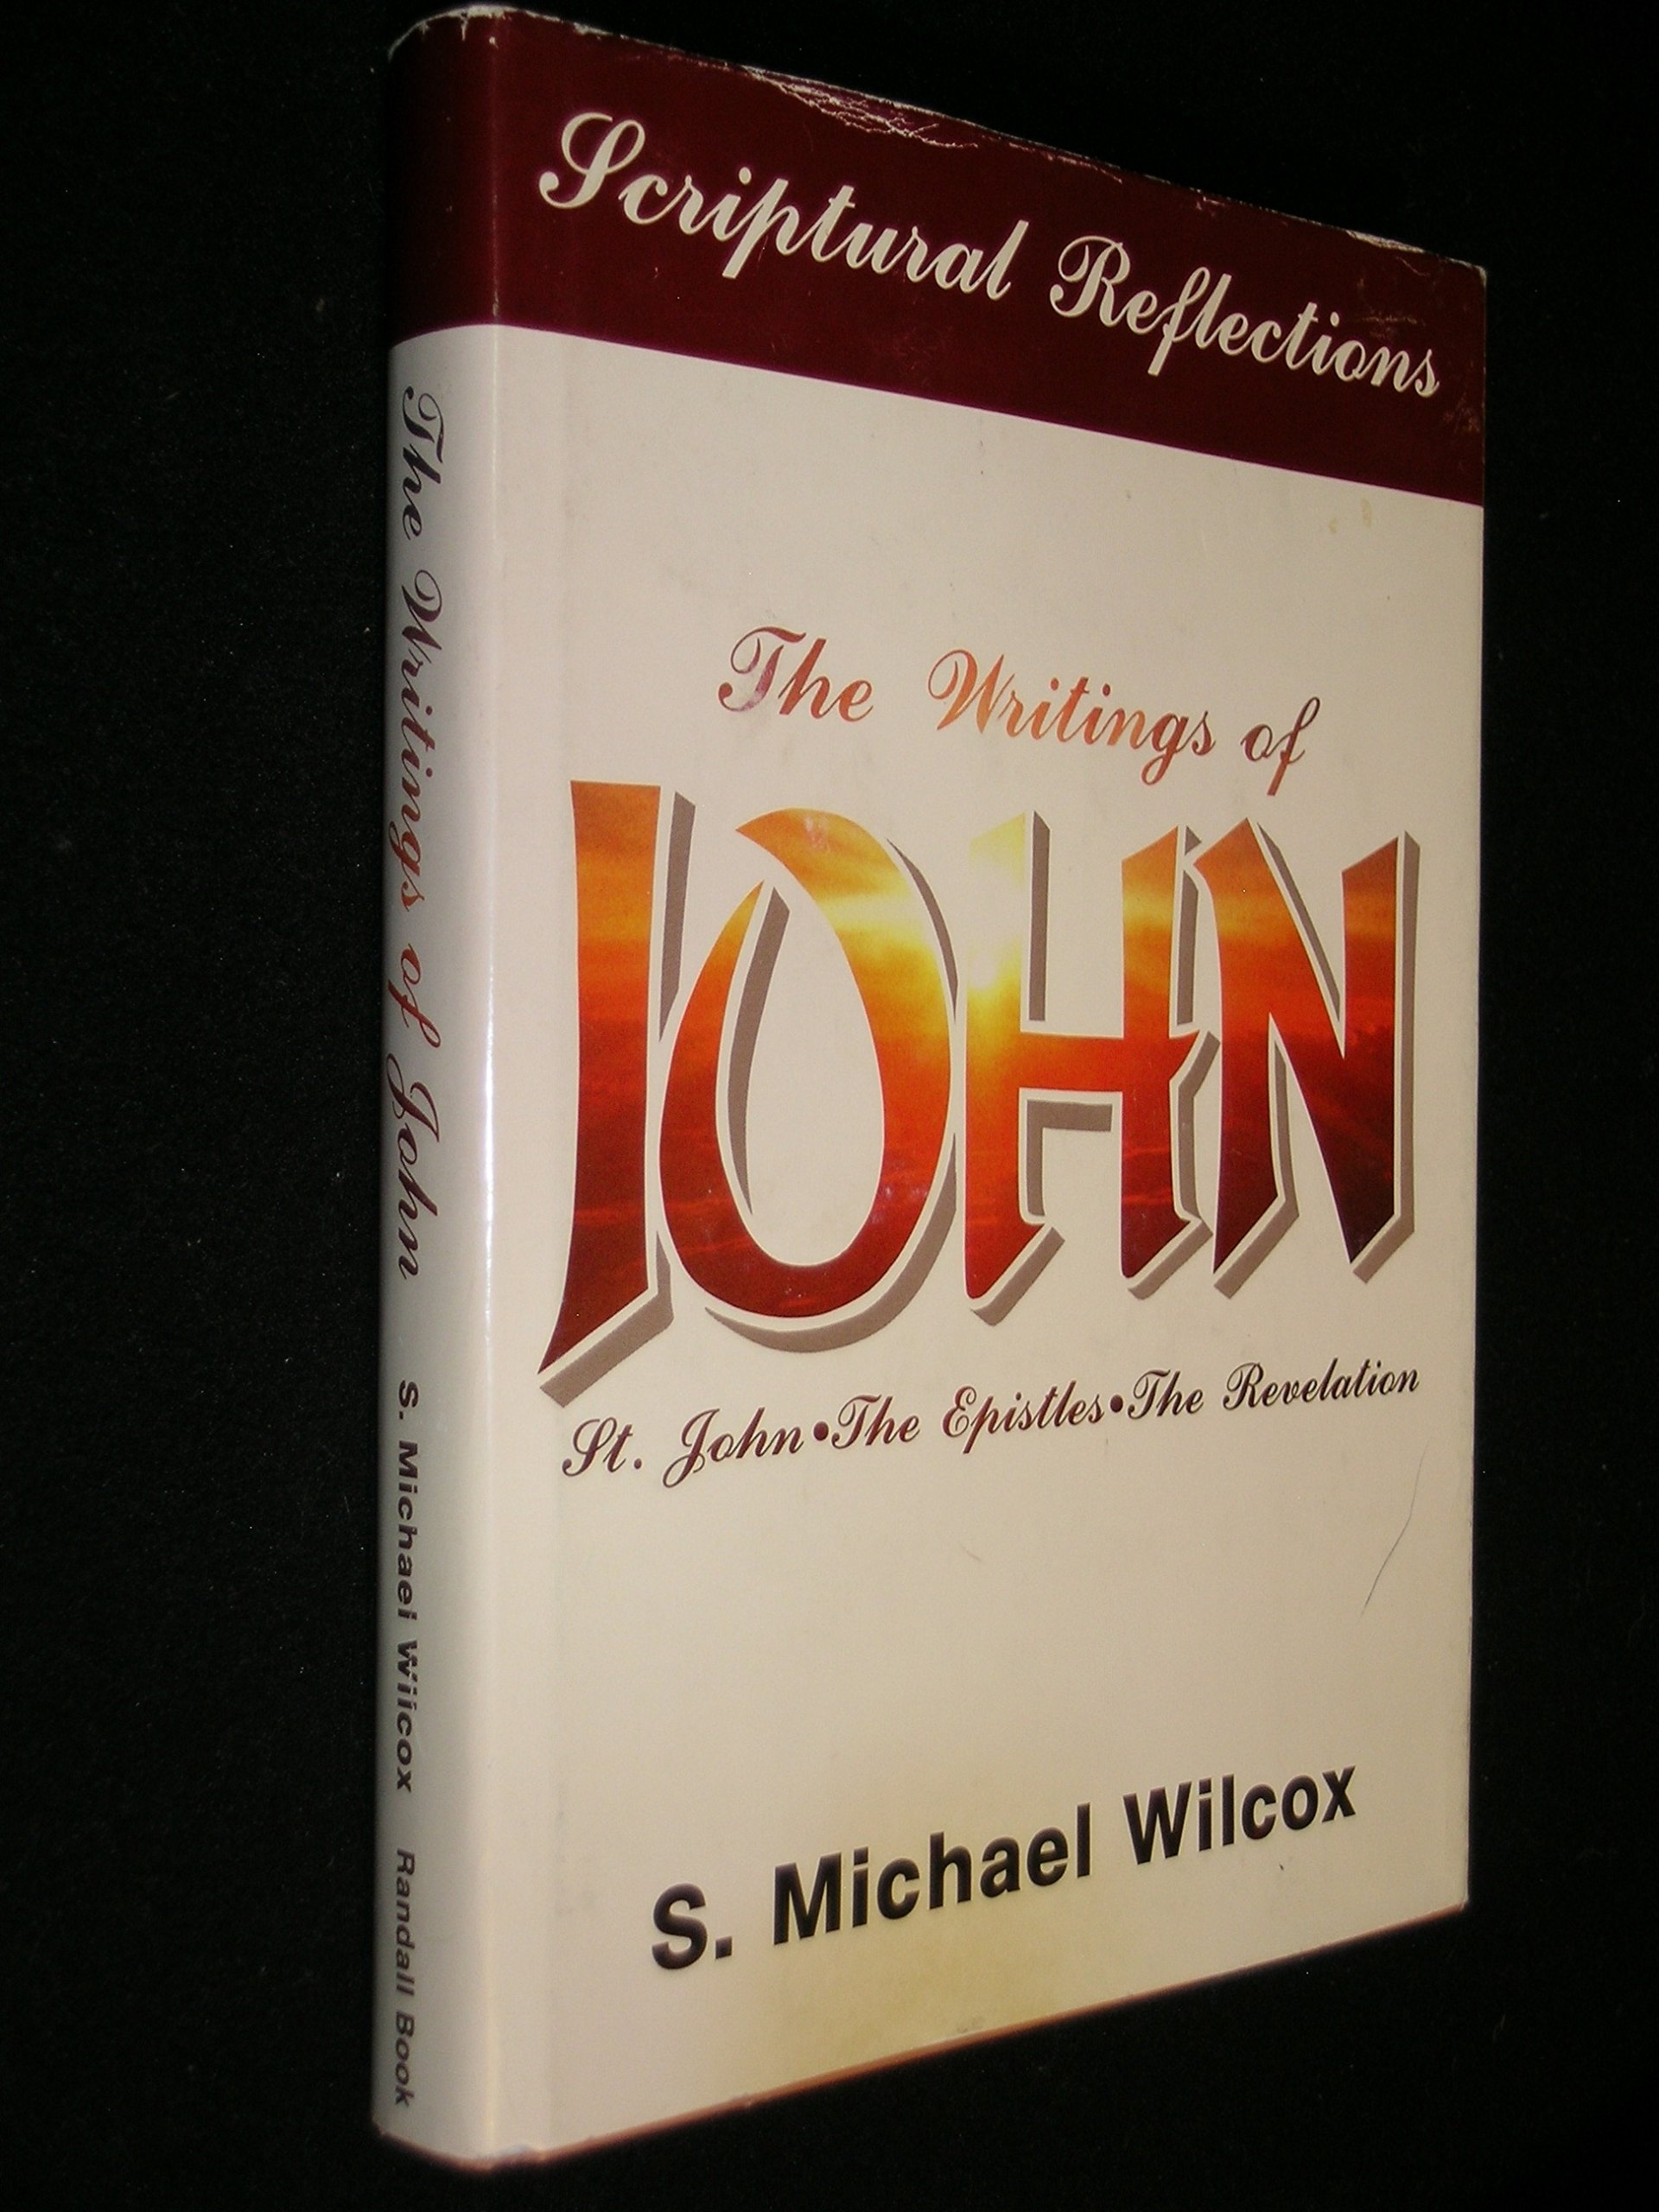 Image for Writings of John St. John, The Epistles The Revelation, Scriptural Reflections